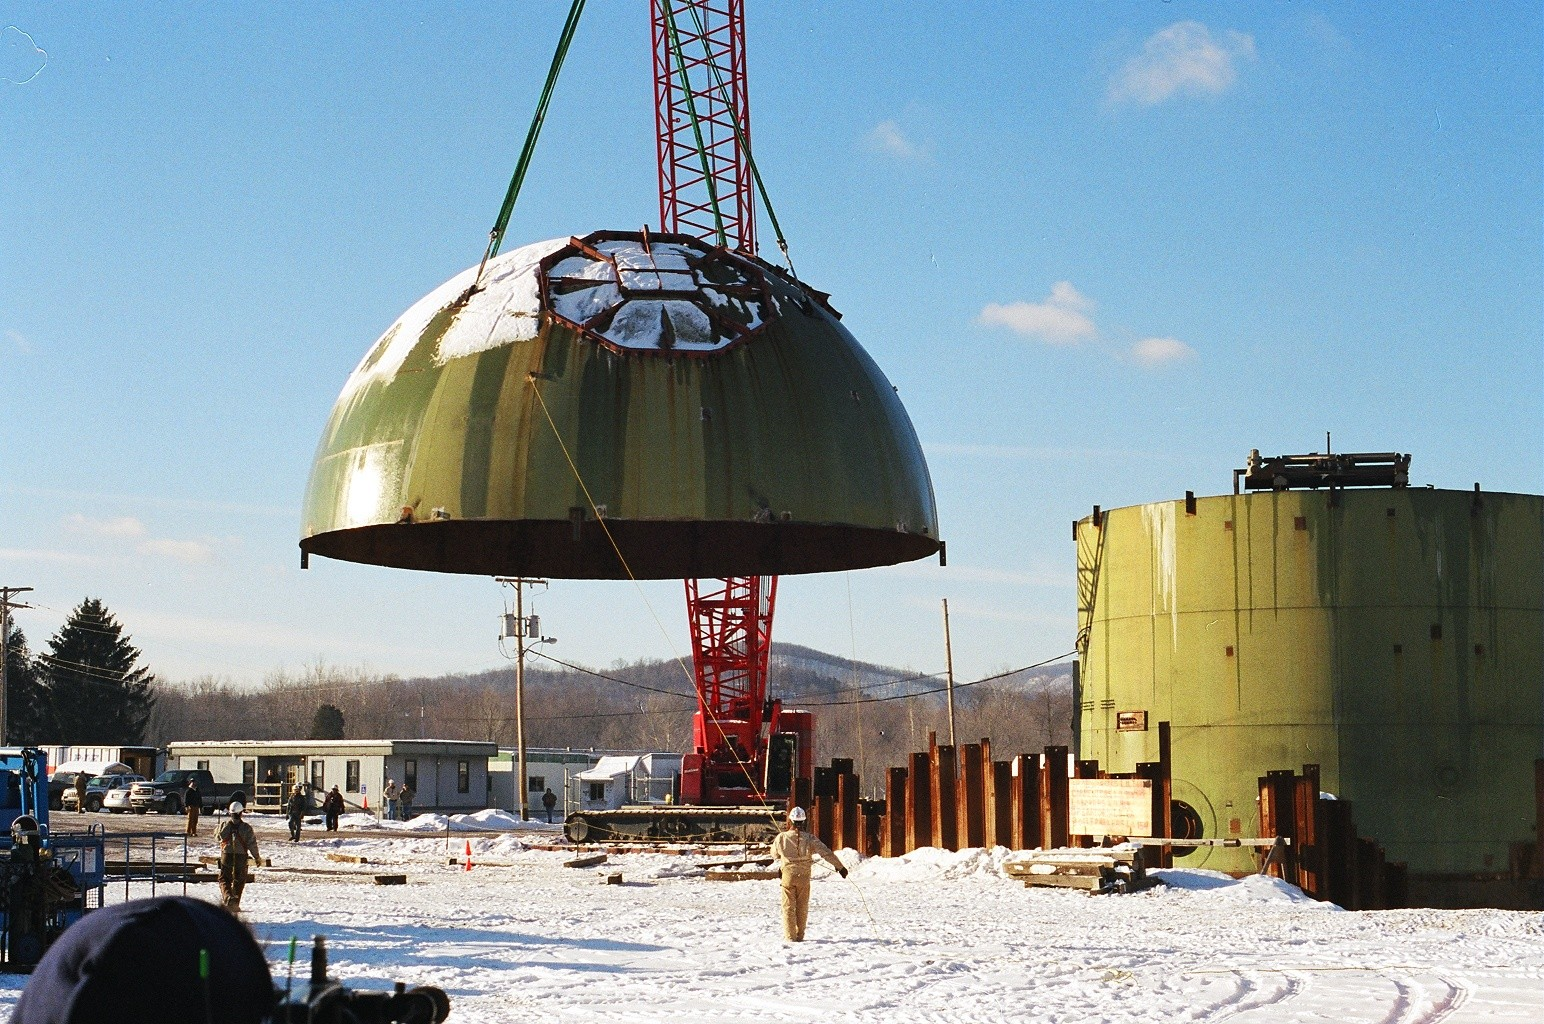 The dome of the  Saxton Nuclear Experimental Facility in Bedford County, PA, U.S. being taken off in 2001.